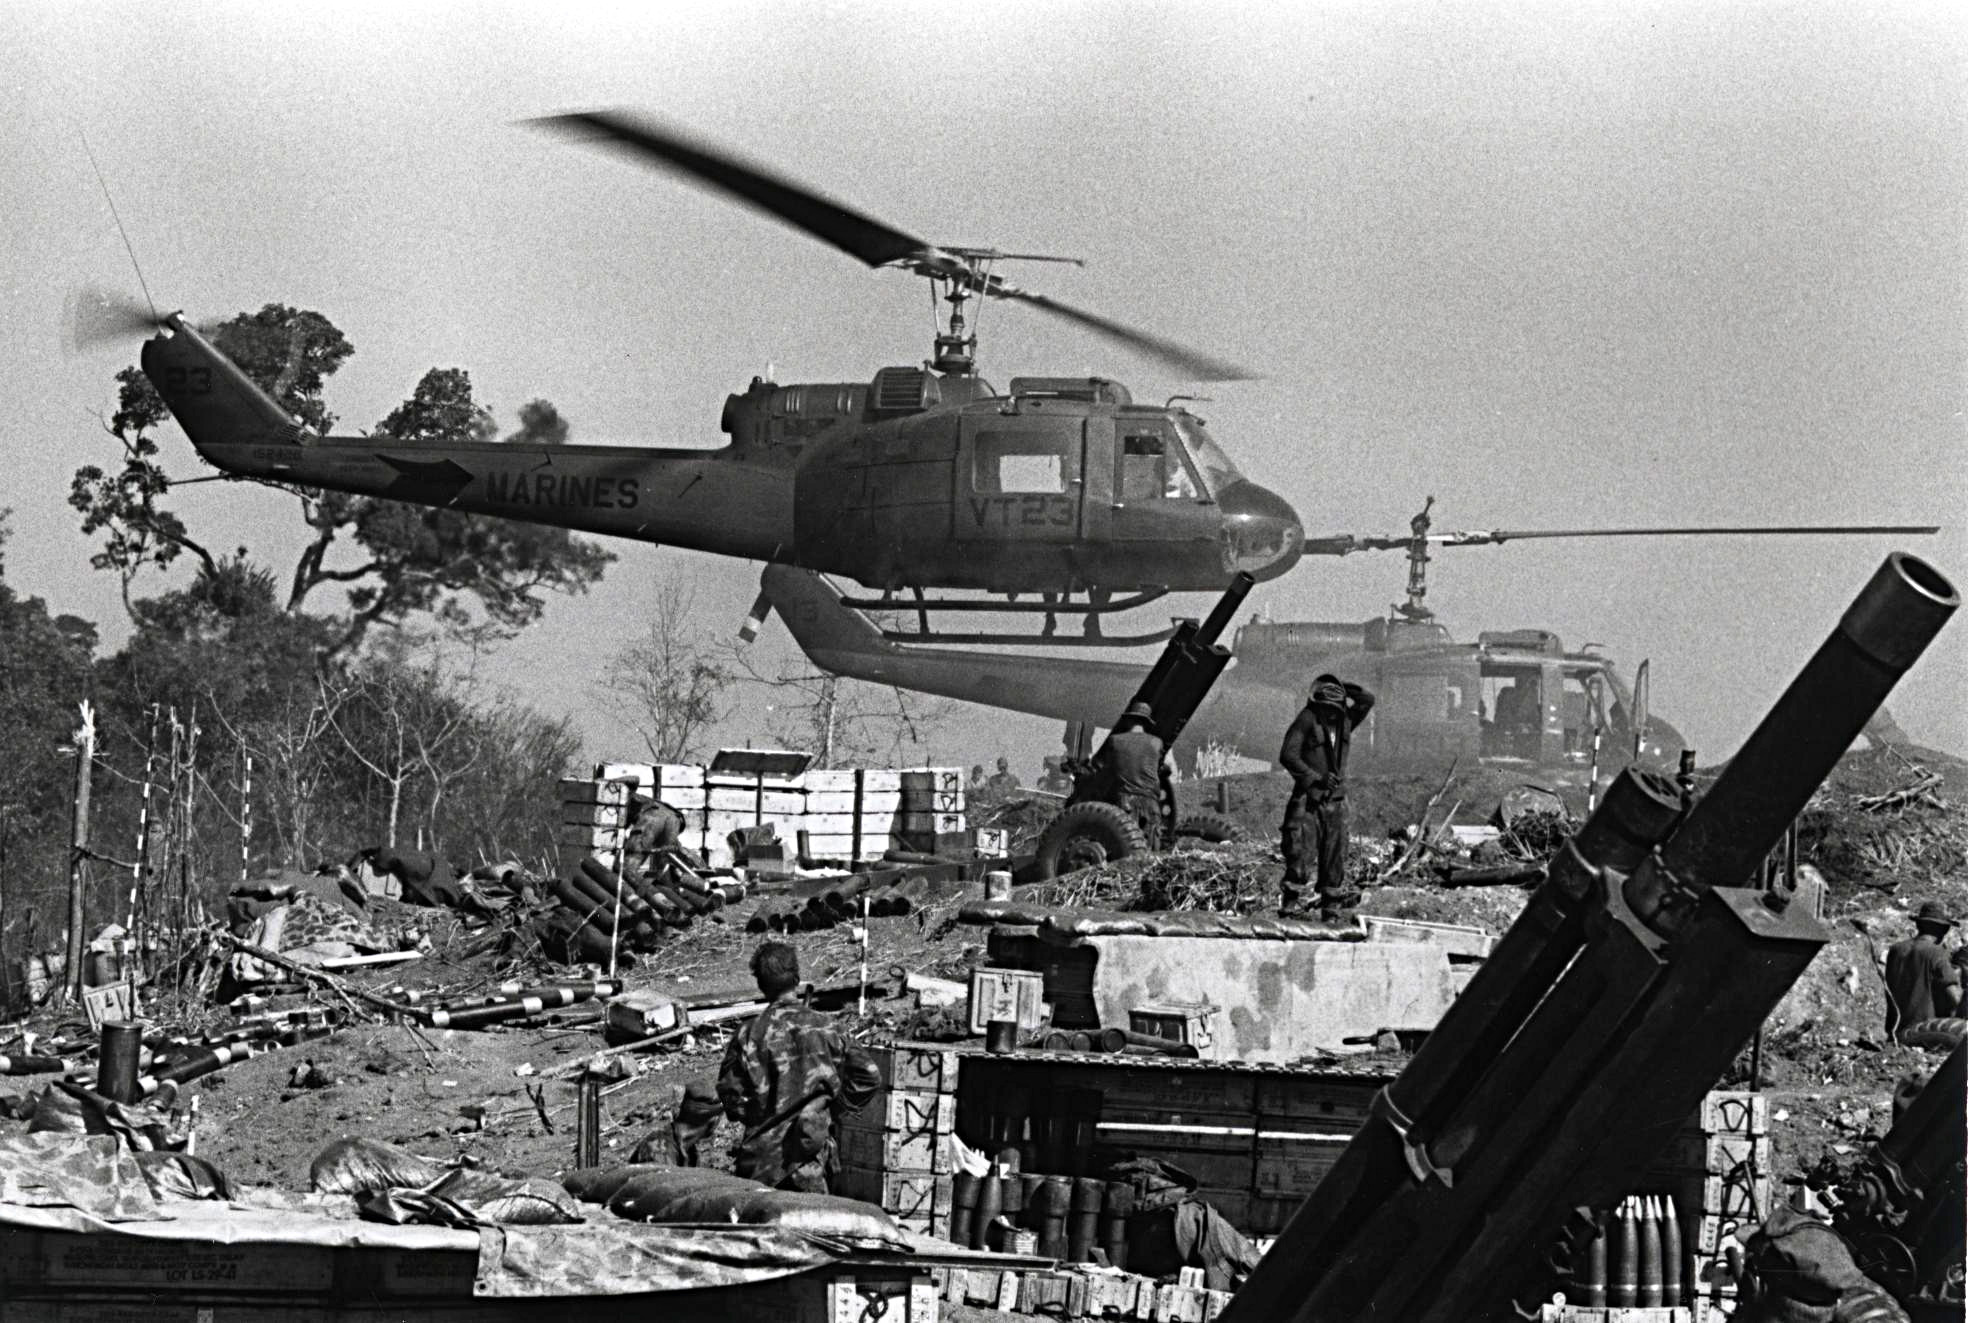 UH-1E_Helicopters_at_Fire_Support_Base_Cunningham,_1969_(11950756174)